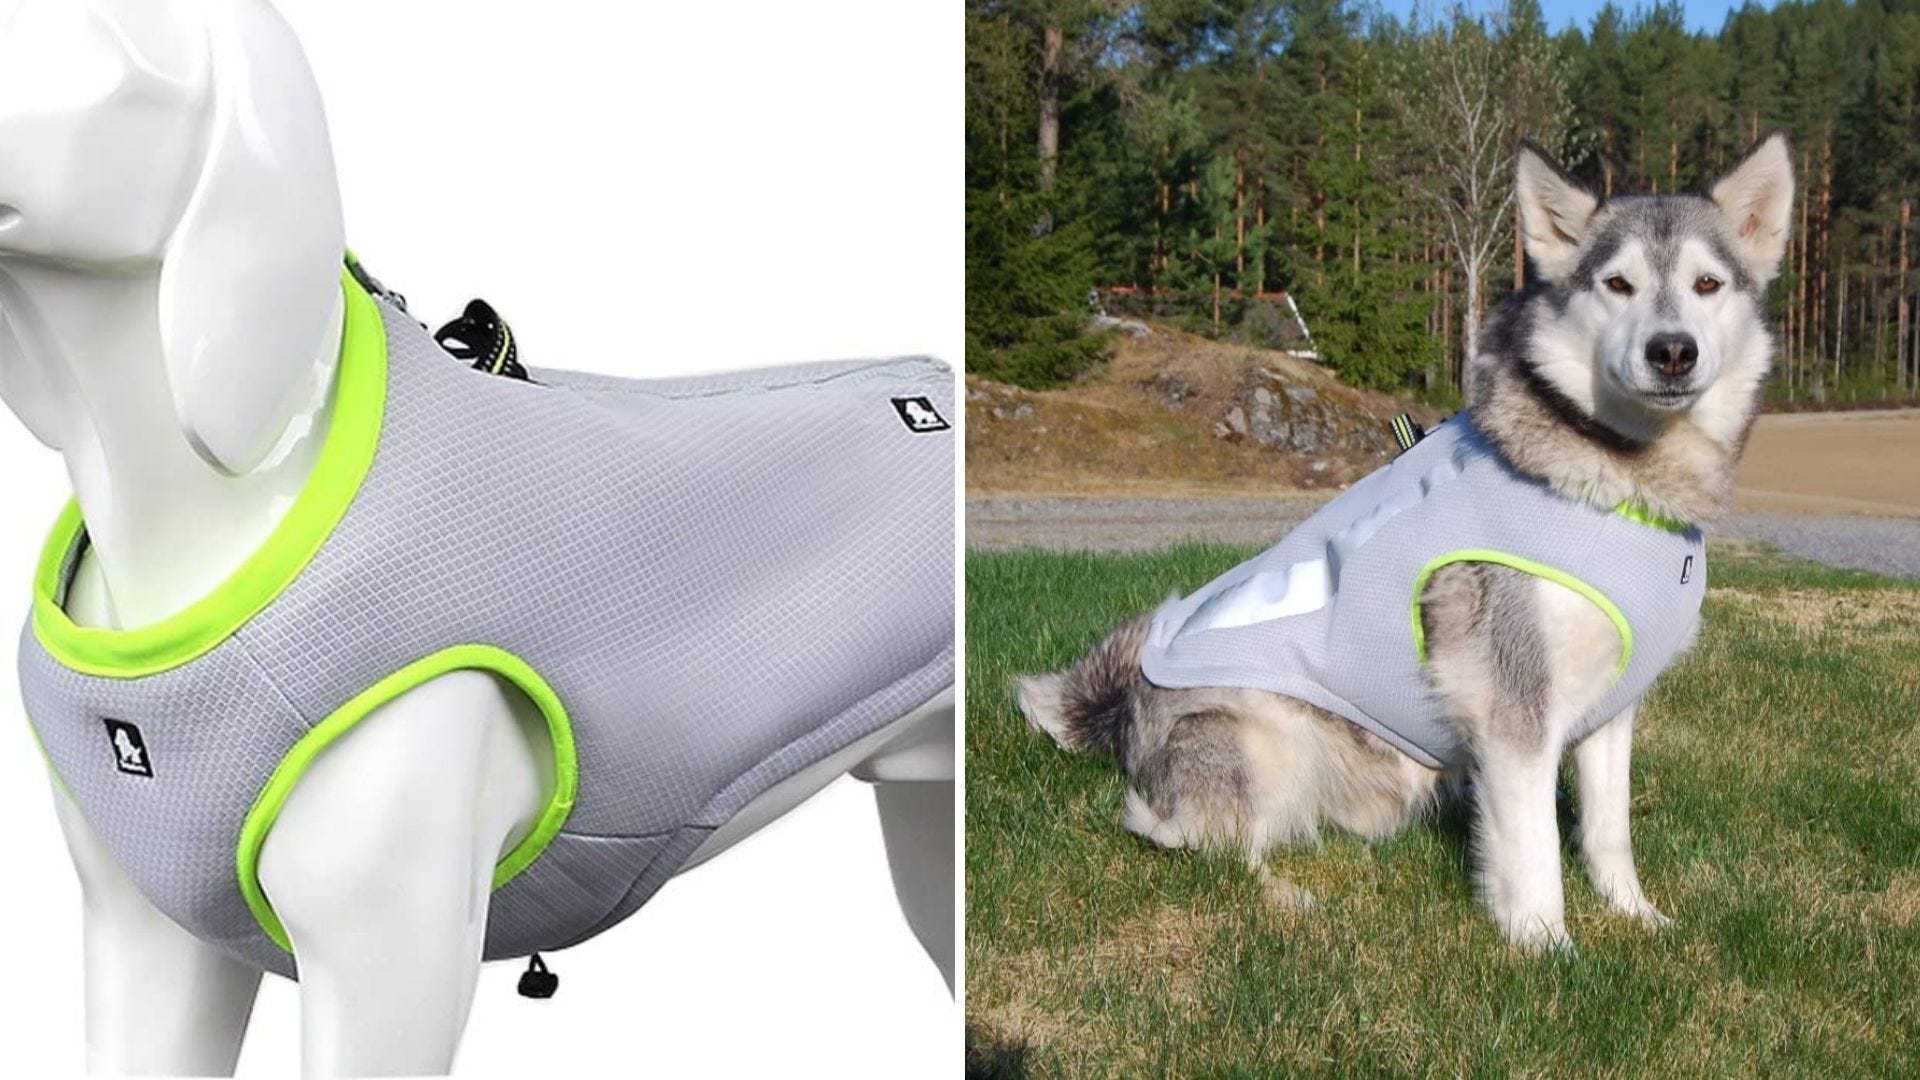 A dog mannequin wears a gray and green vest and a dog wears the same vest.